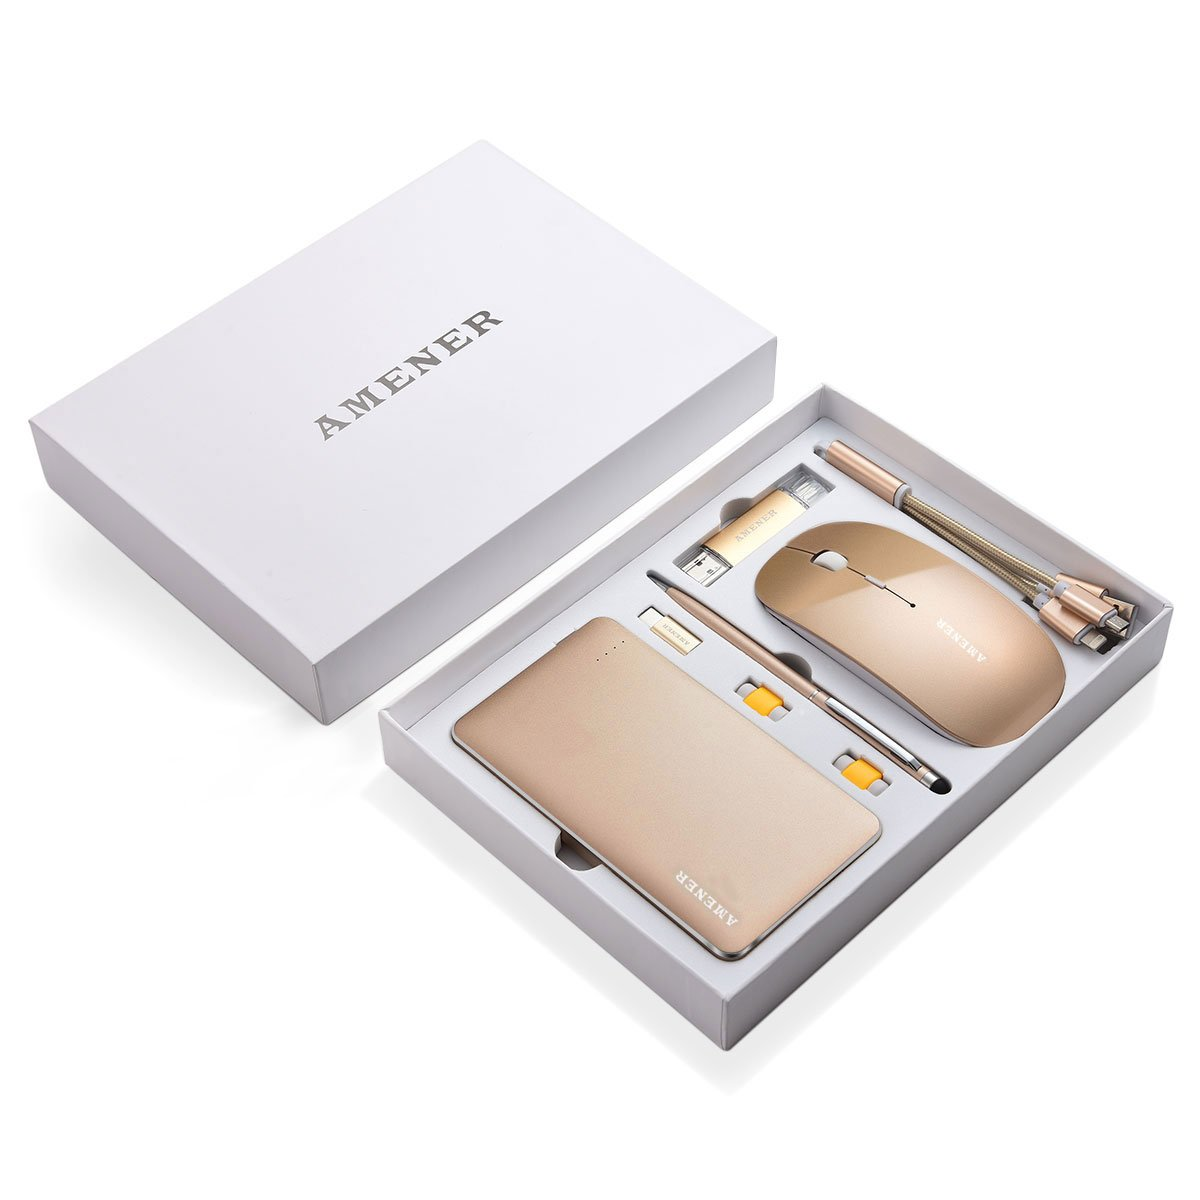 AMENER Luxury Business Gift Set- Professional Office Supplies Cellphone Computer Electronic Kit, (Gold) by AMENER (Image #7)